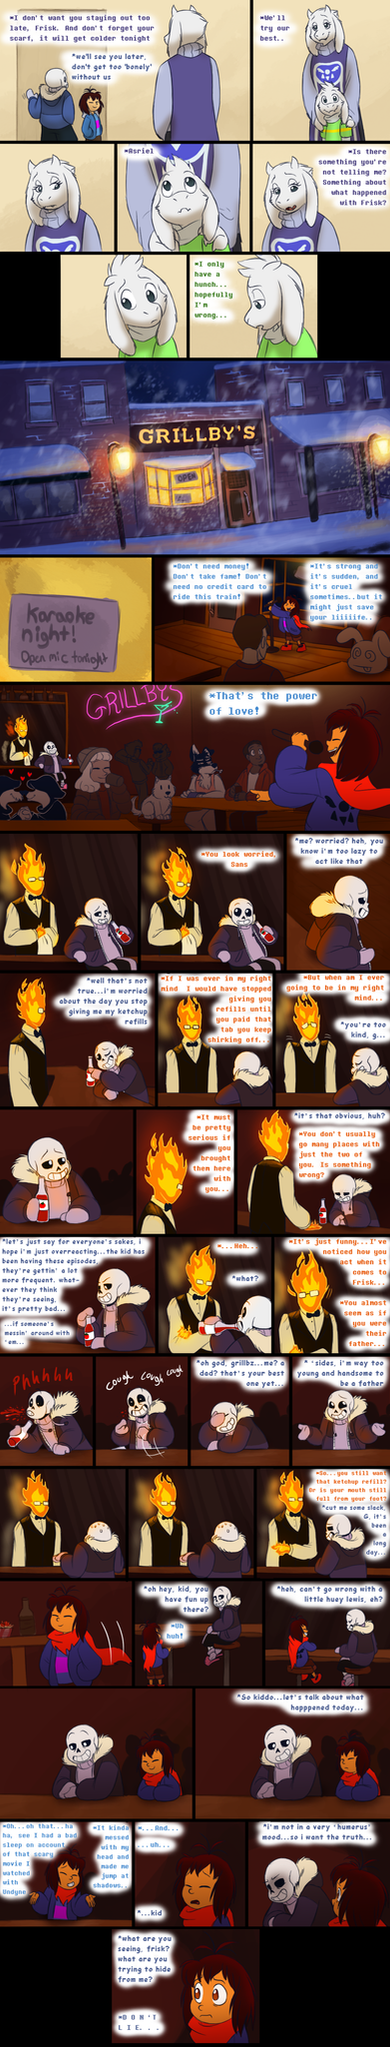 Endertale - Page 11 by TC-96